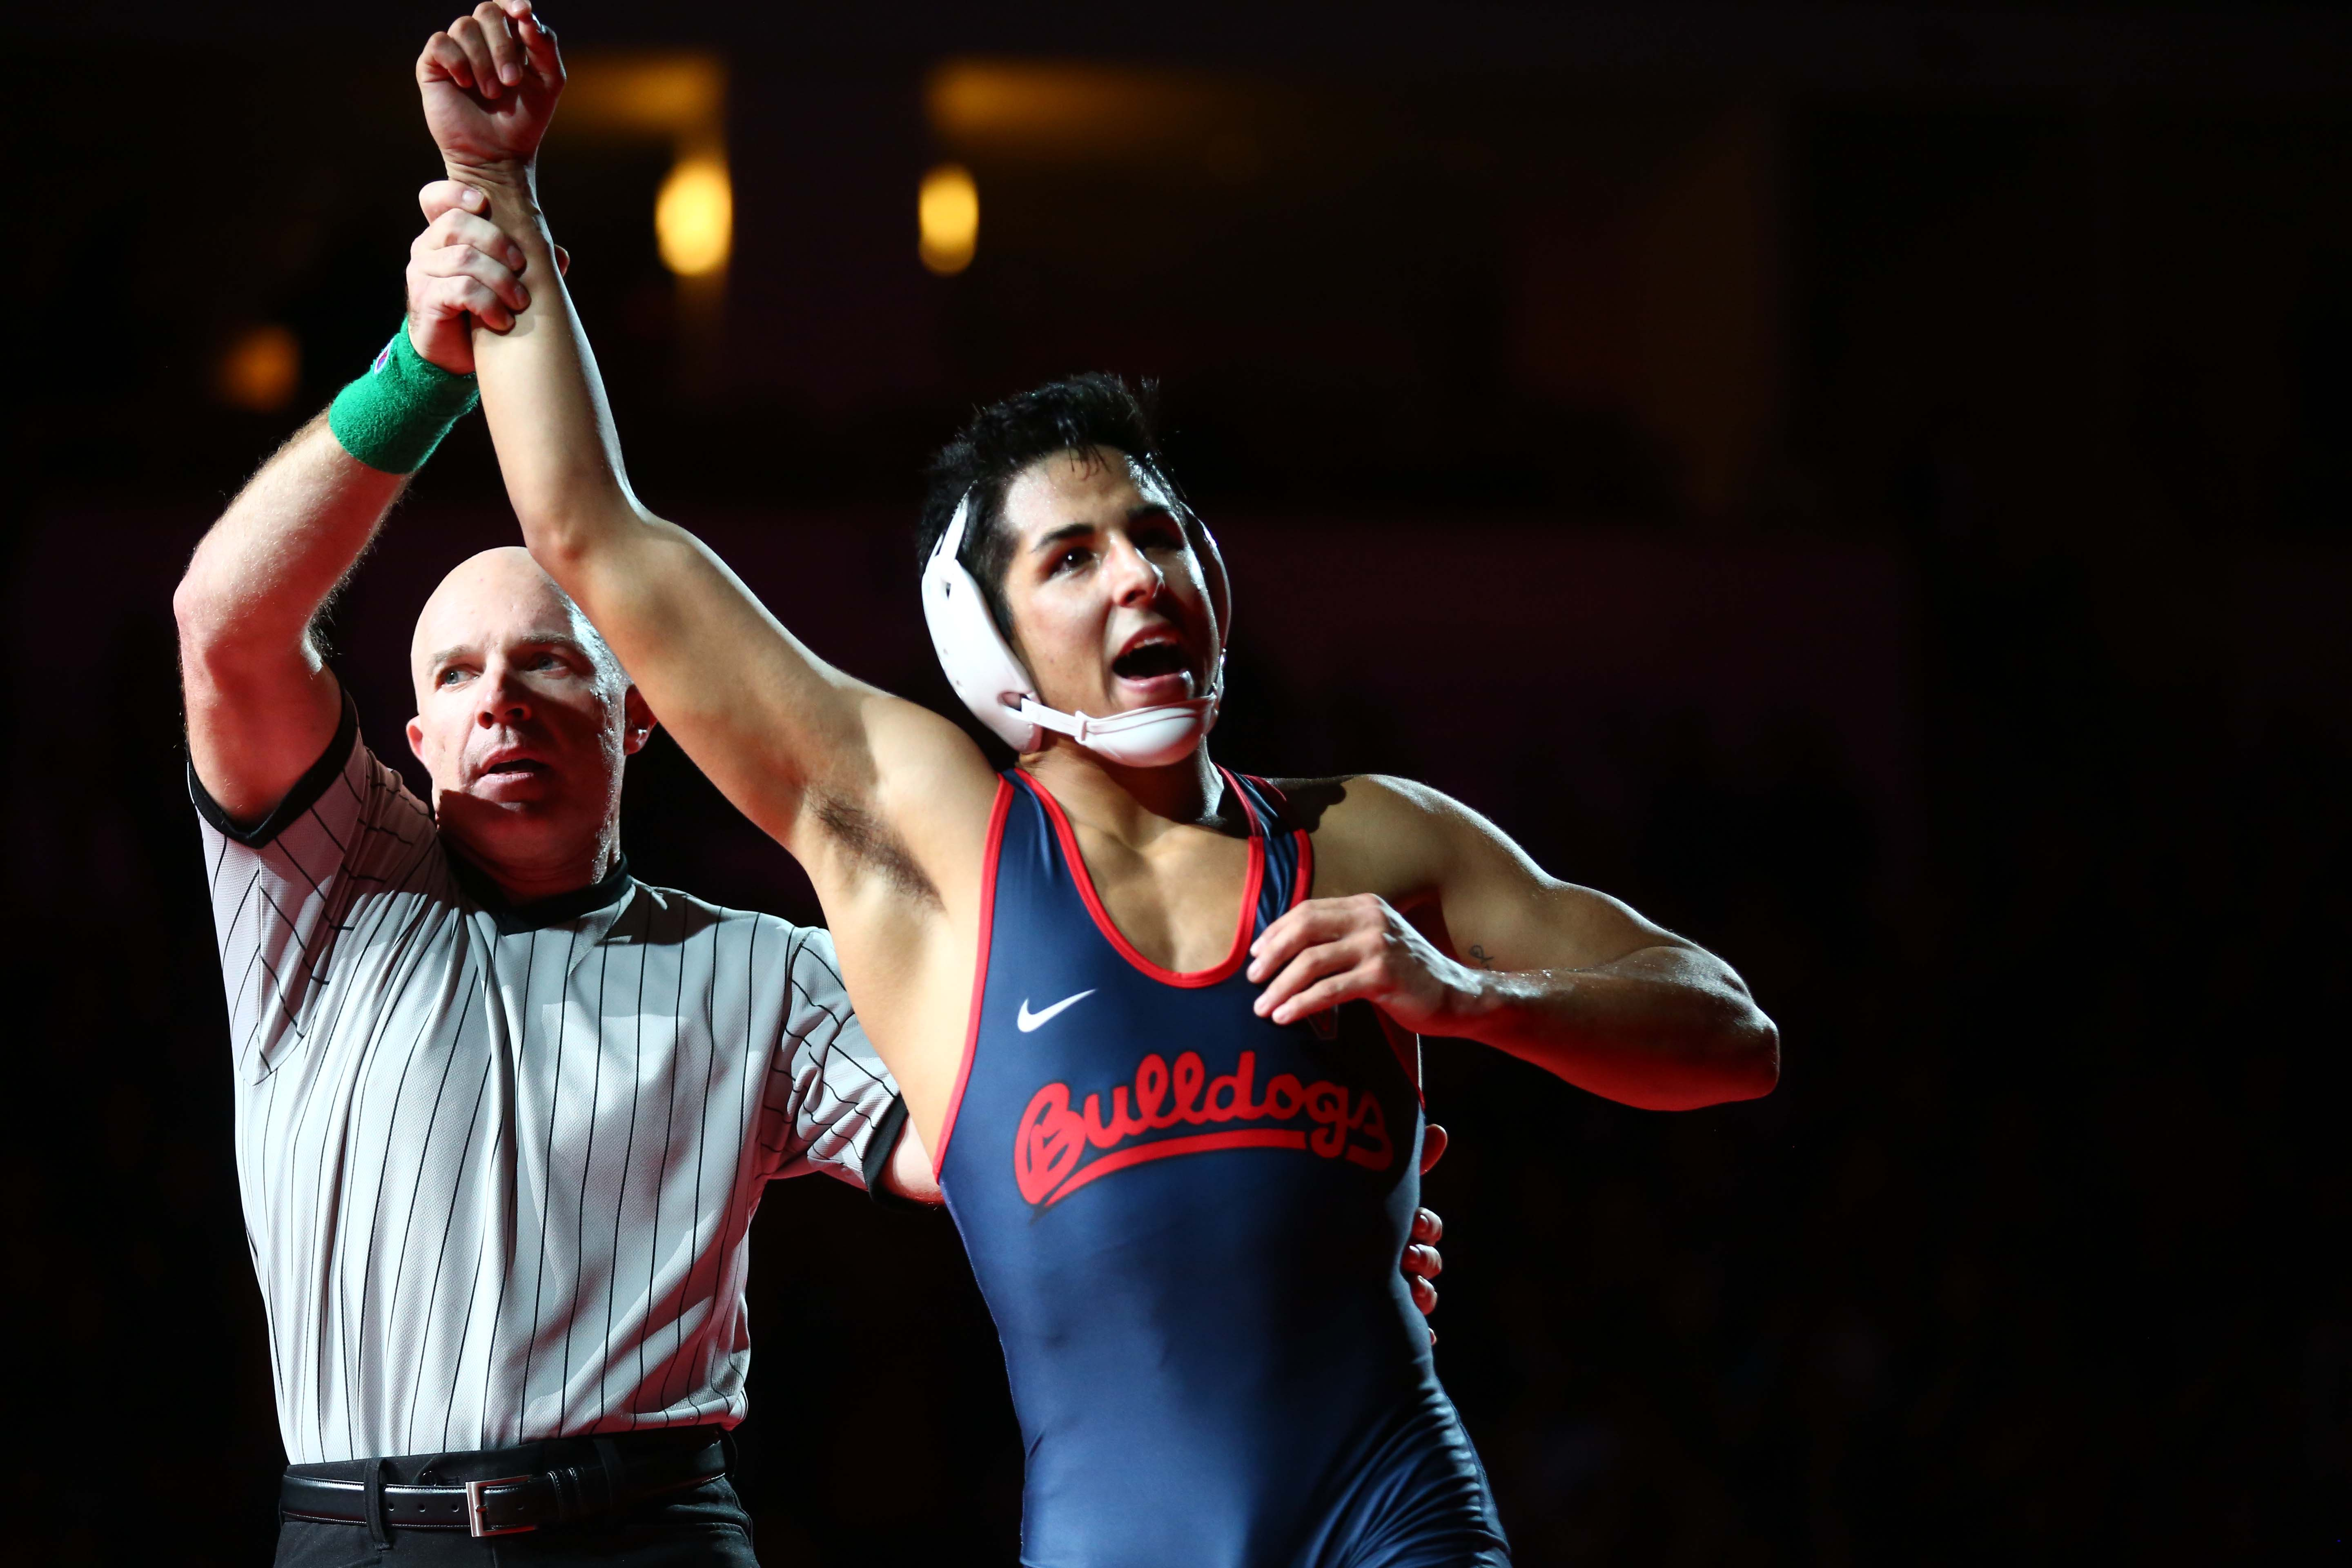 PHOTOS: Wrestling returns to Fresno State after 11 years